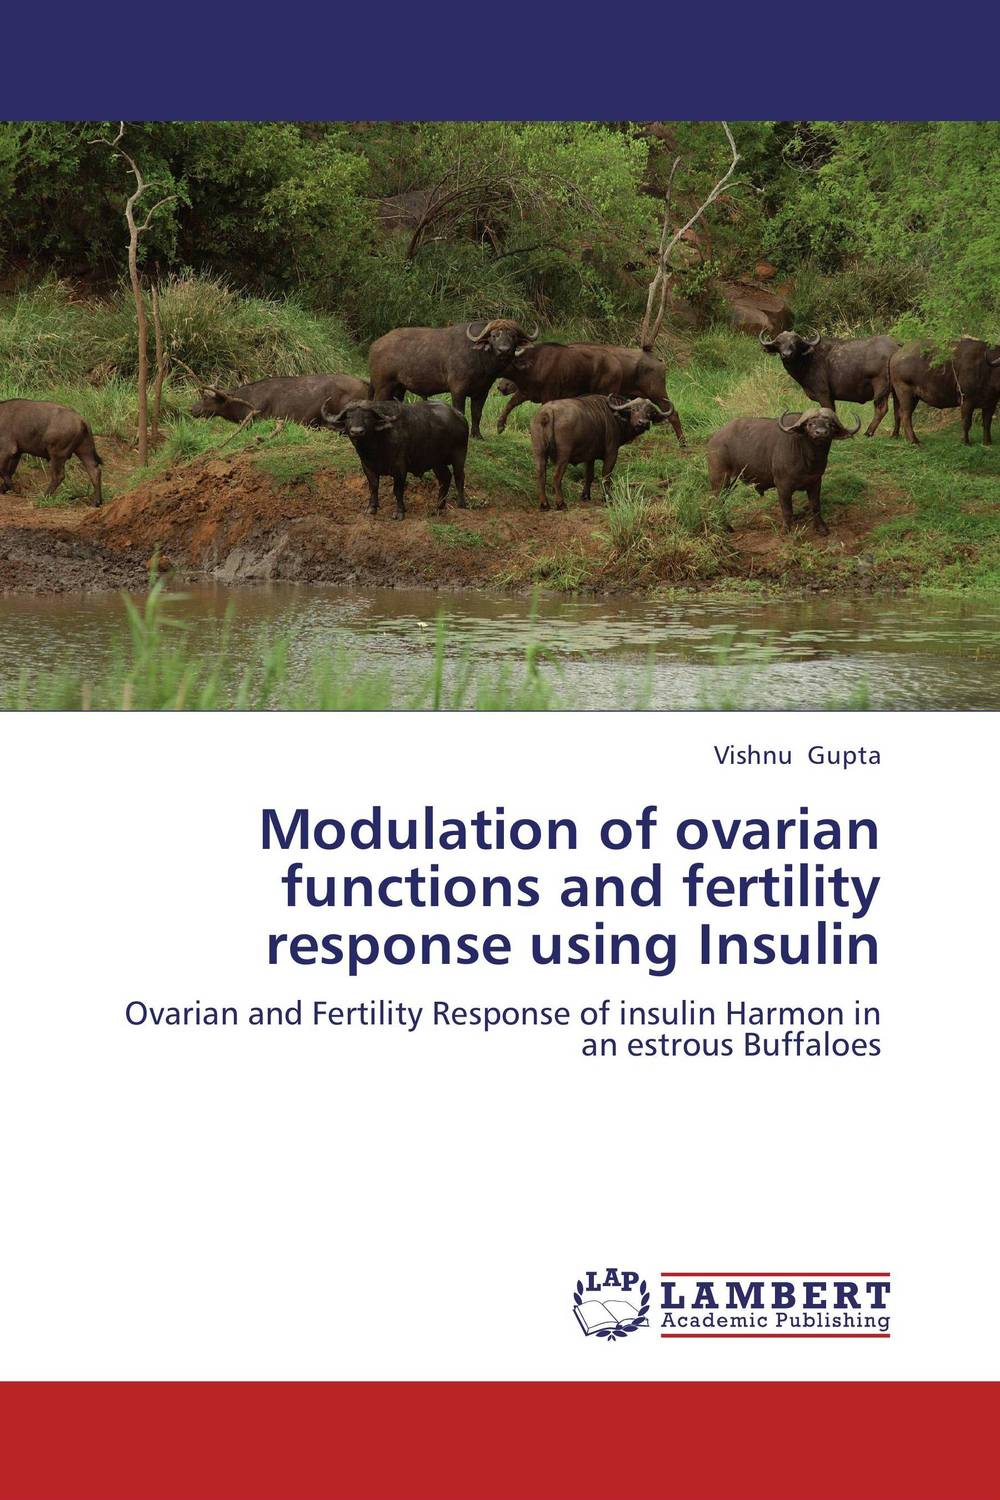 Modulation of ovarian functions and fertility response using Insulin vishnu gupta modulation of ovarian functions and fertility response using insulin